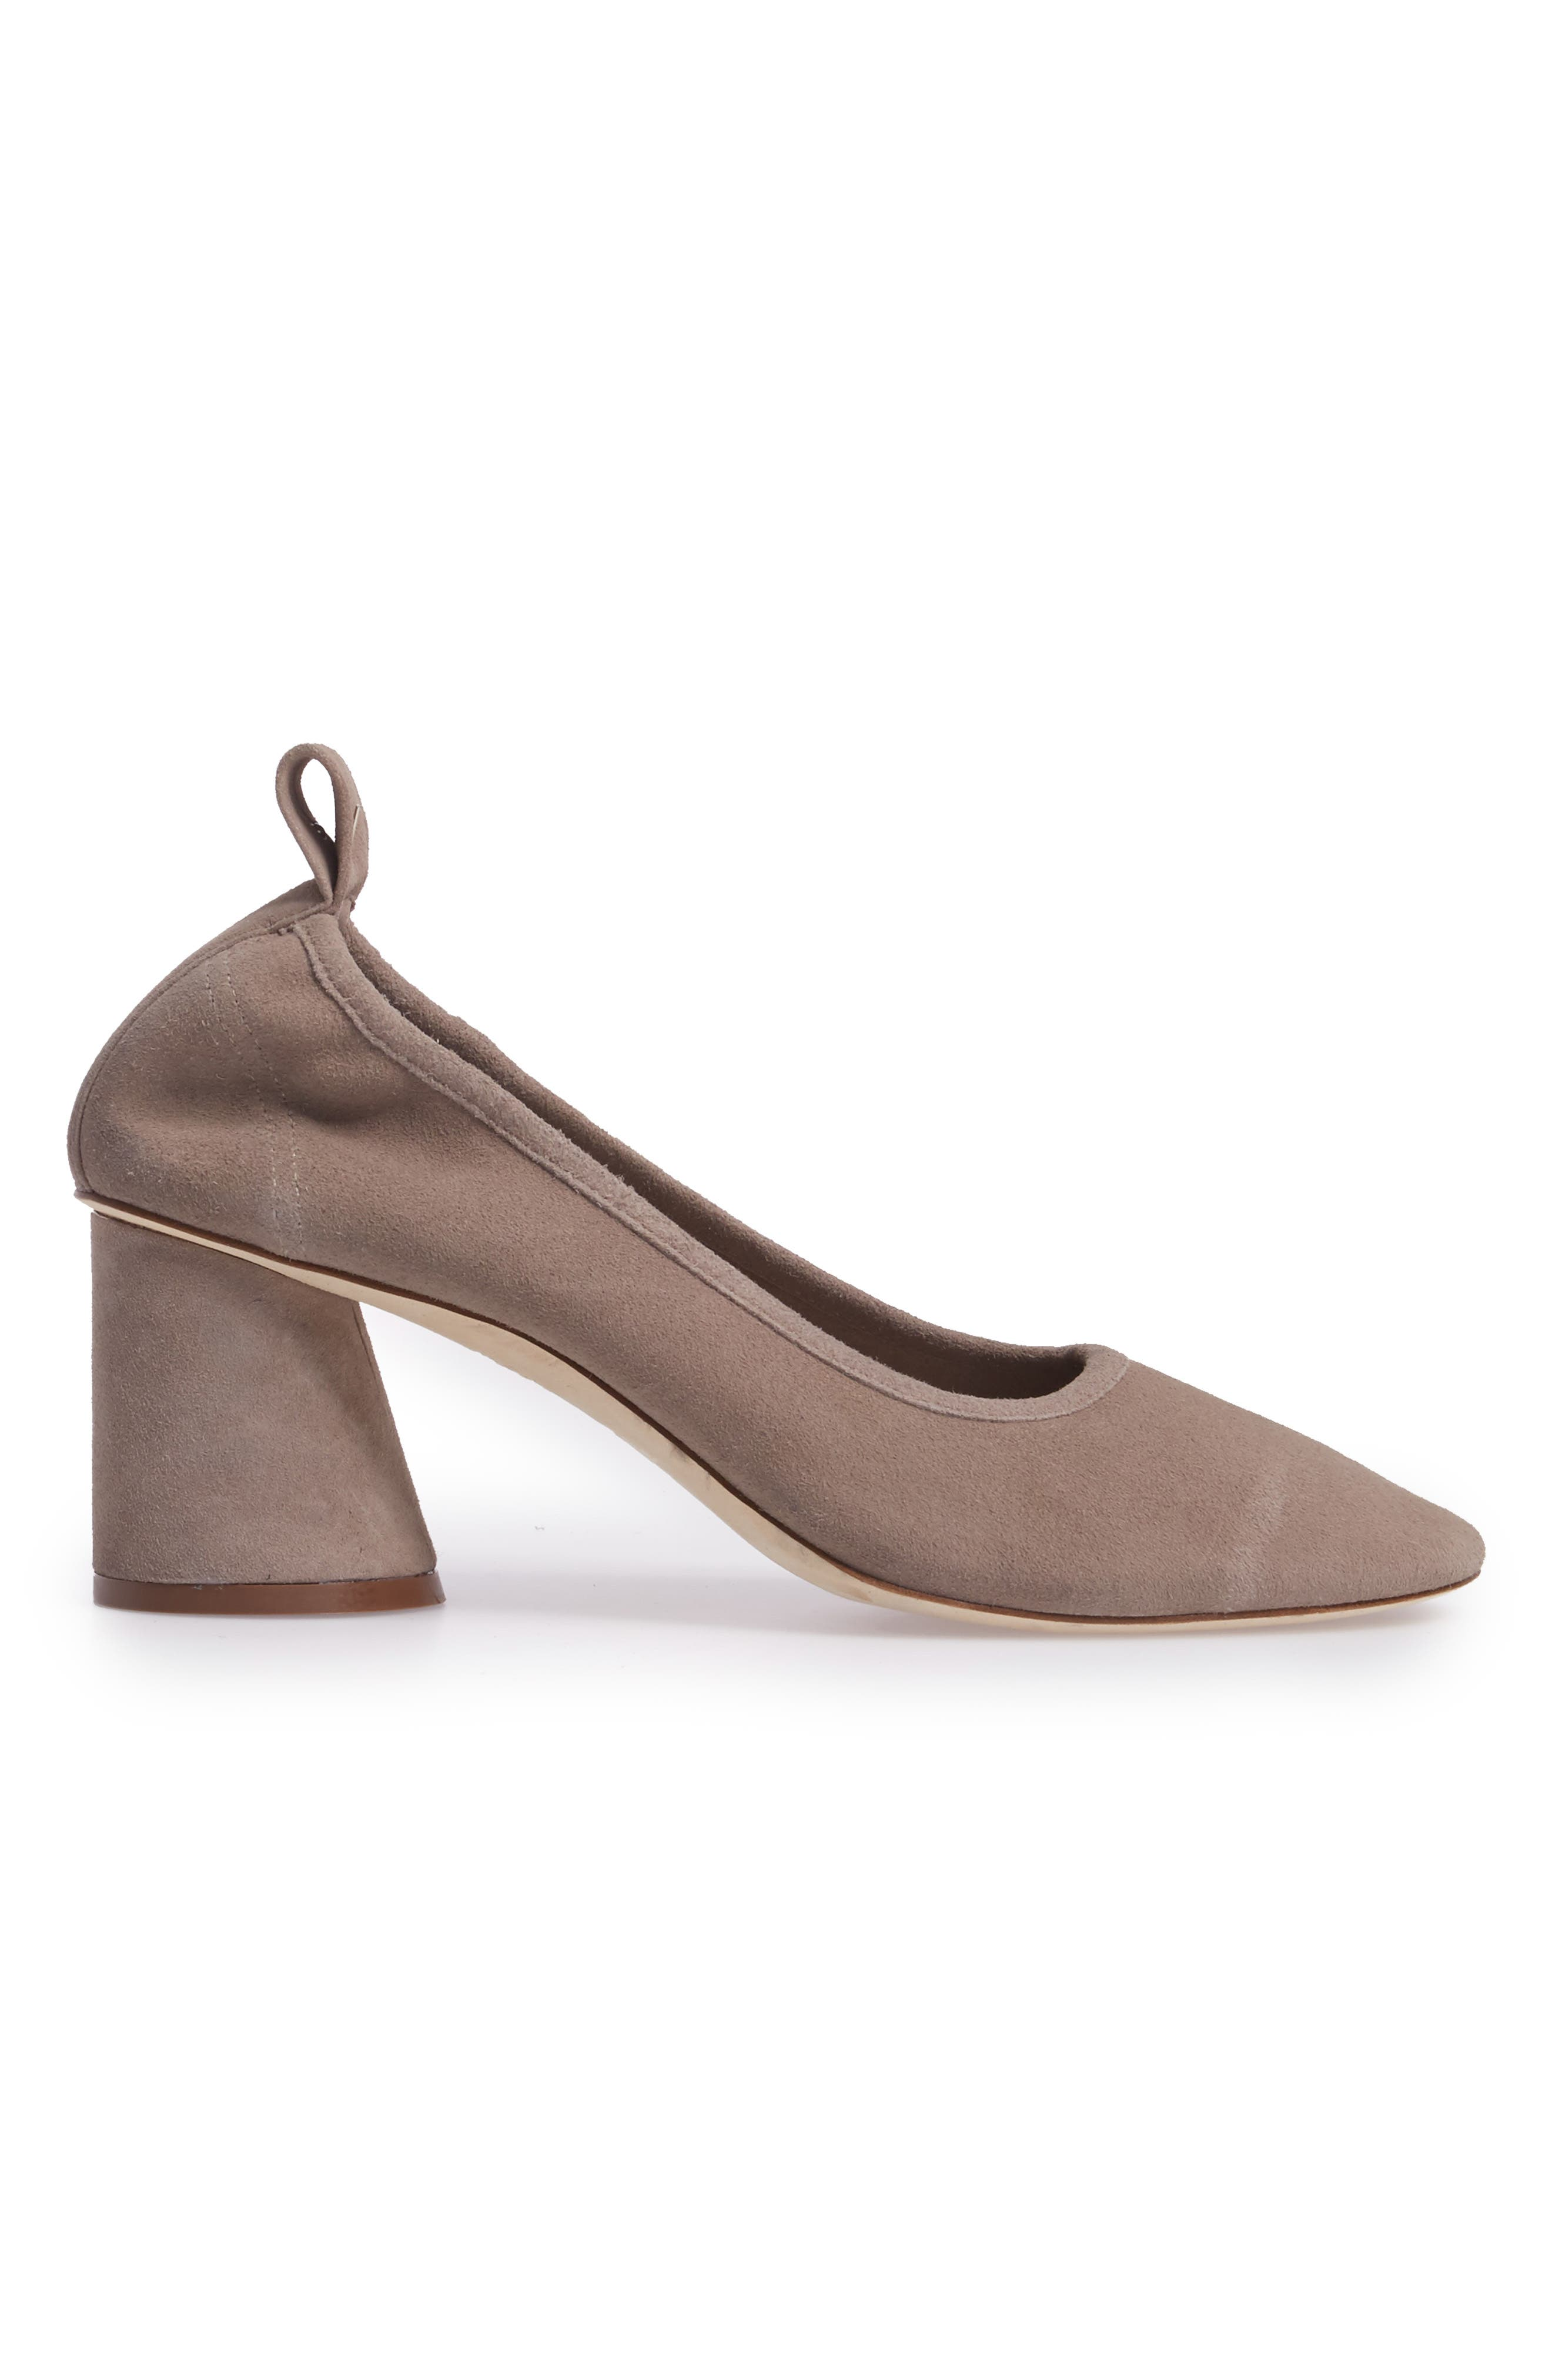 Therese Statement Heel Pump,                             Alternate thumbnail 3, color,                             Duststorm